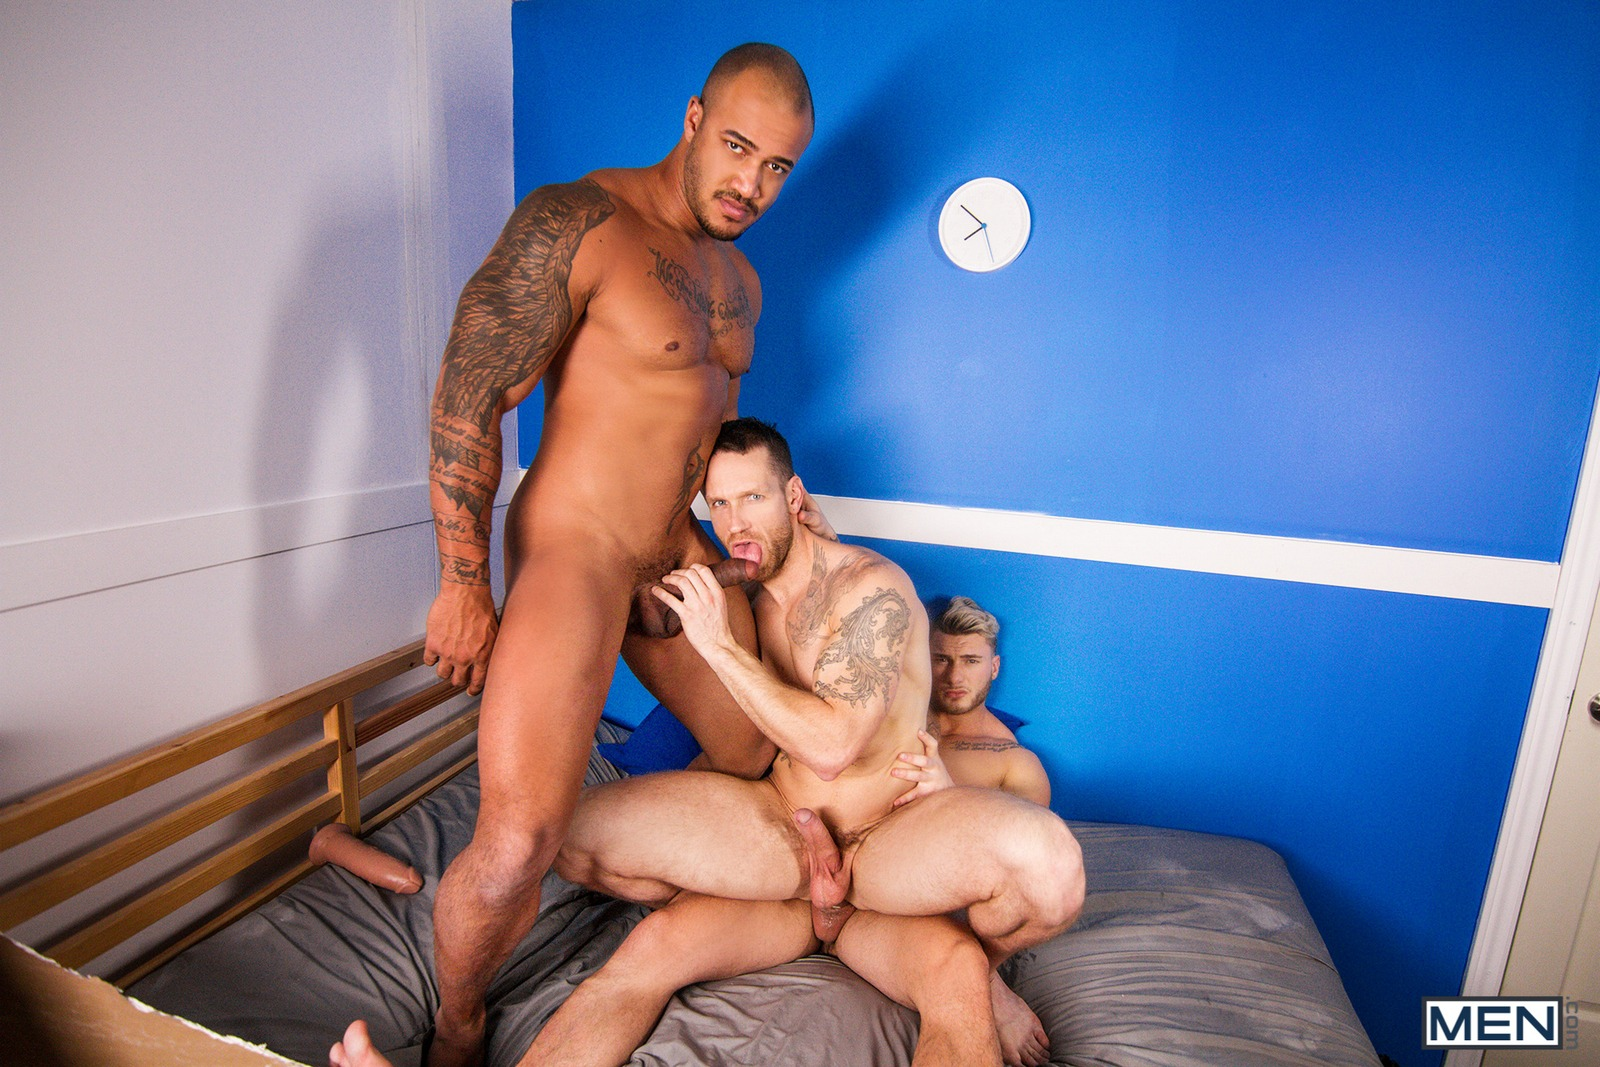 Nude gay men having a threesome